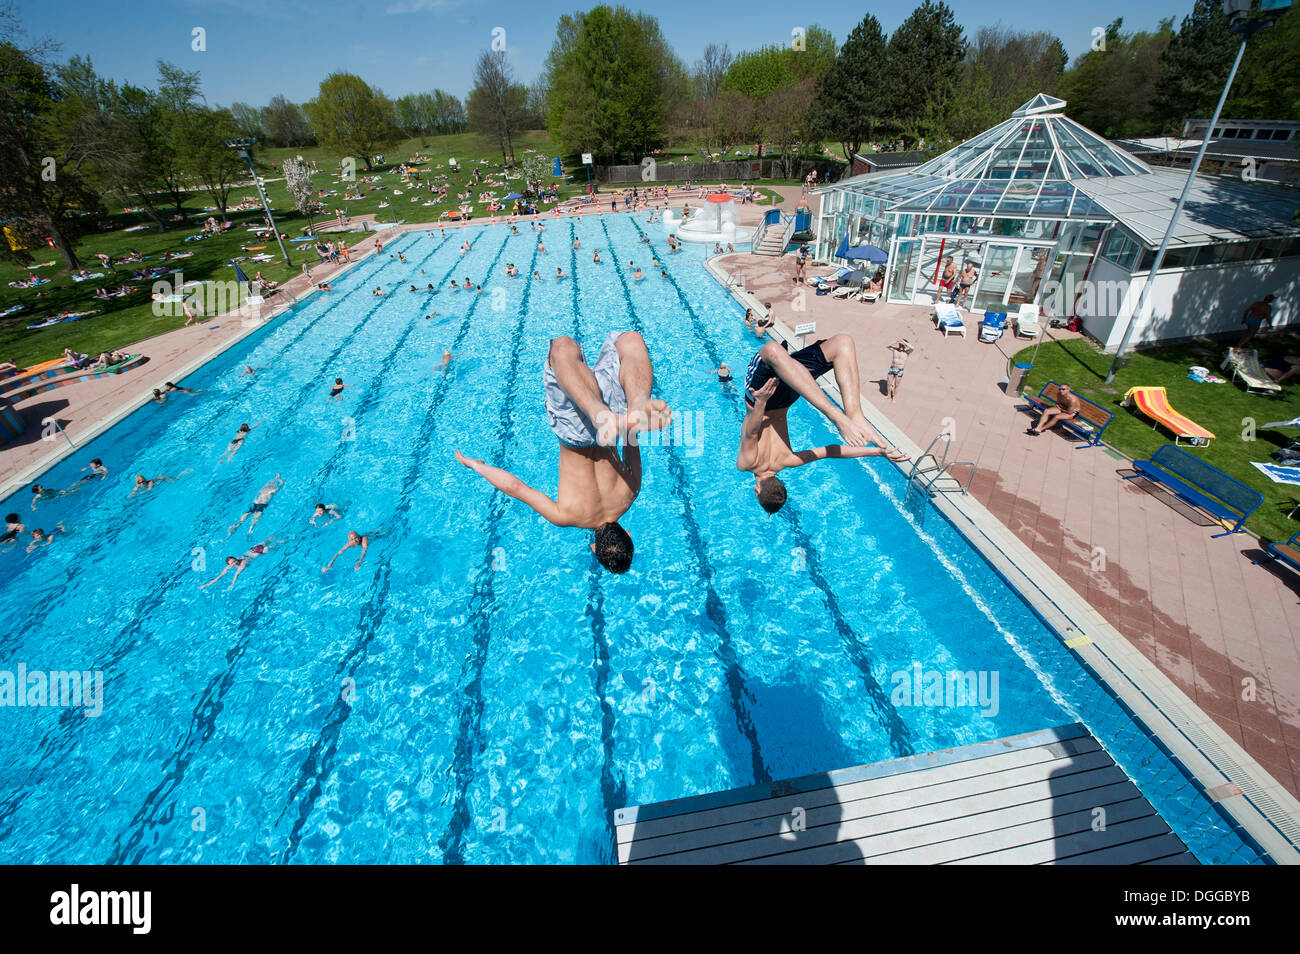 Pool Stuttgart Boys Diving Into A Public Swimming Pool Moehringer